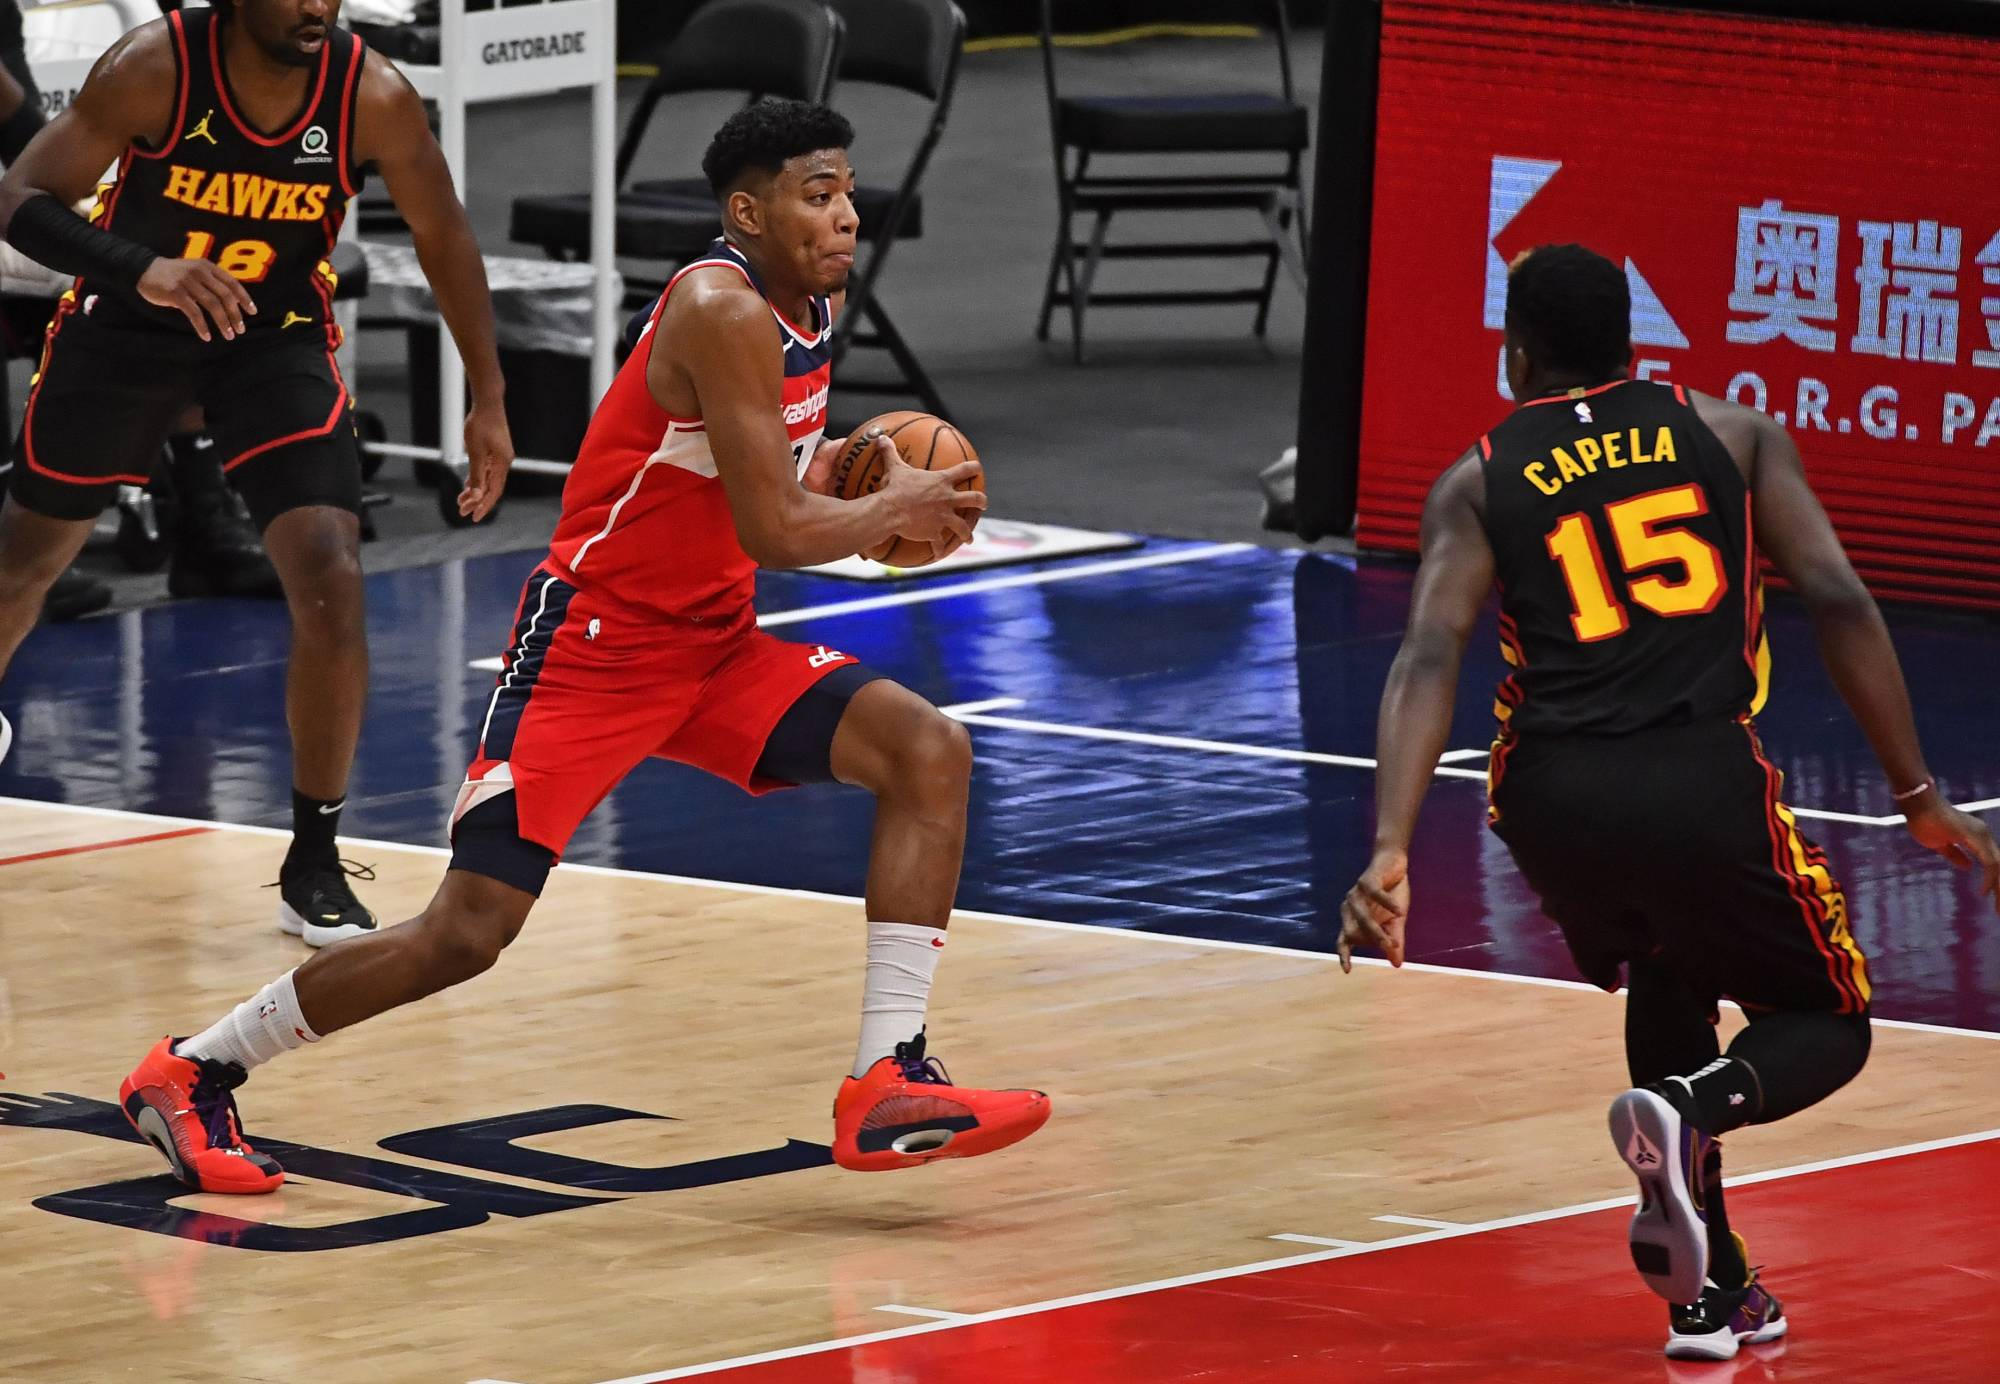 Washington Wizards forward Rui Hachimura drives to the basket against Atlanta Hawks center Clint Capela during the second quarter at Capital One Arena in Washington on Friday.   USA TODAY / VIA REUTERS